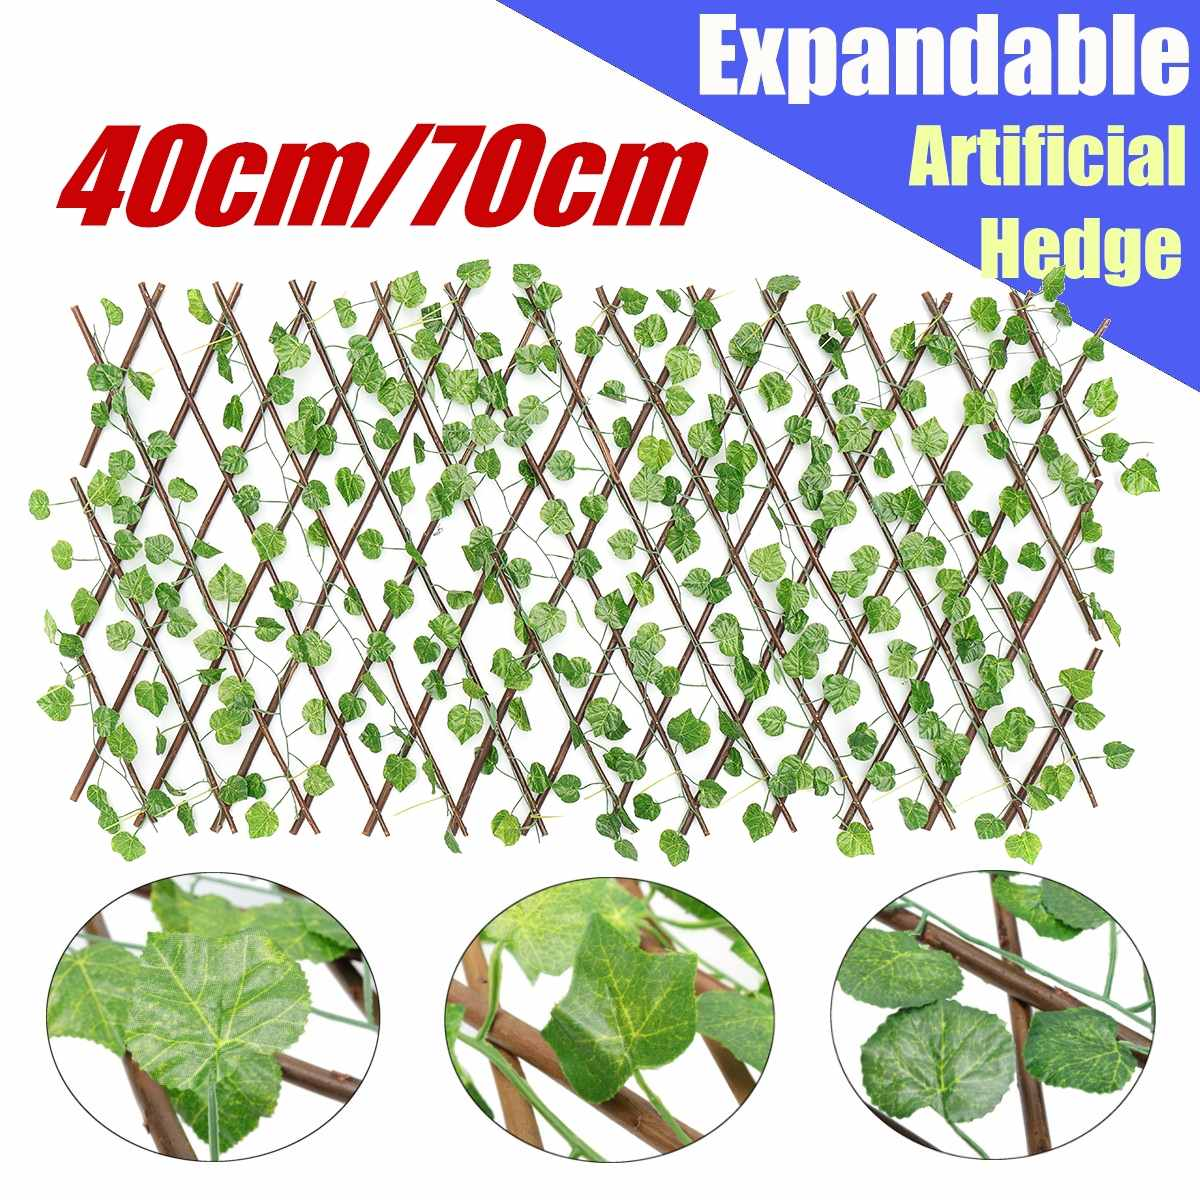 40cm Green Expandable Artificial Hedge Leaf Fence Garden Patio Yard Screen Party Decoration Home Restaurant Ornaments Photo Prop